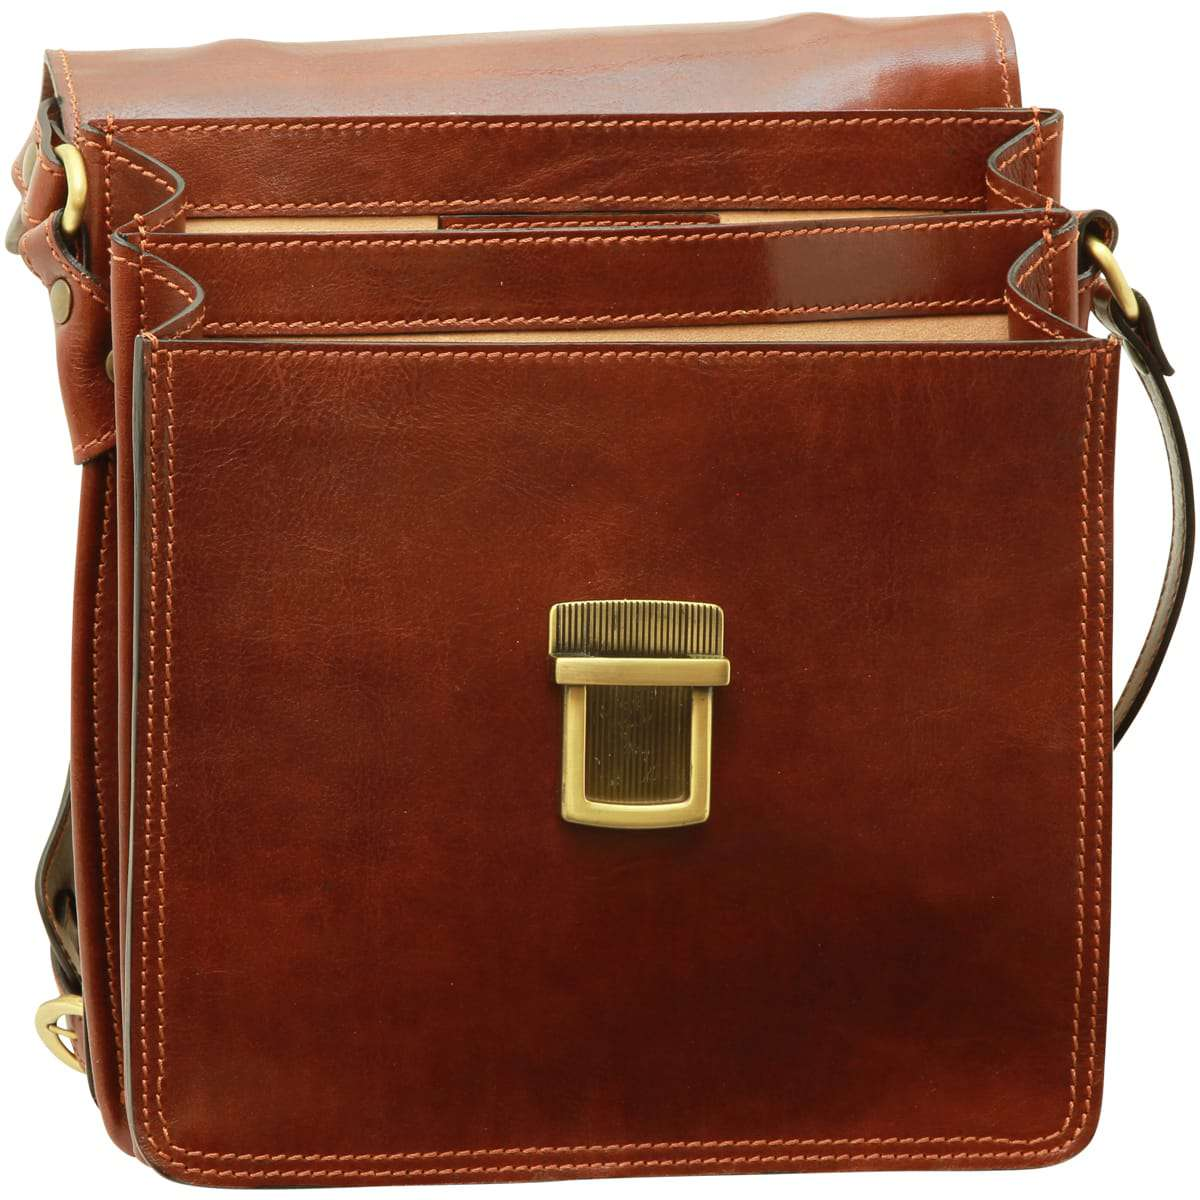 Leather Cross Body Satchel Bag - Brown | 056505MA UK | Old Angler Firenze